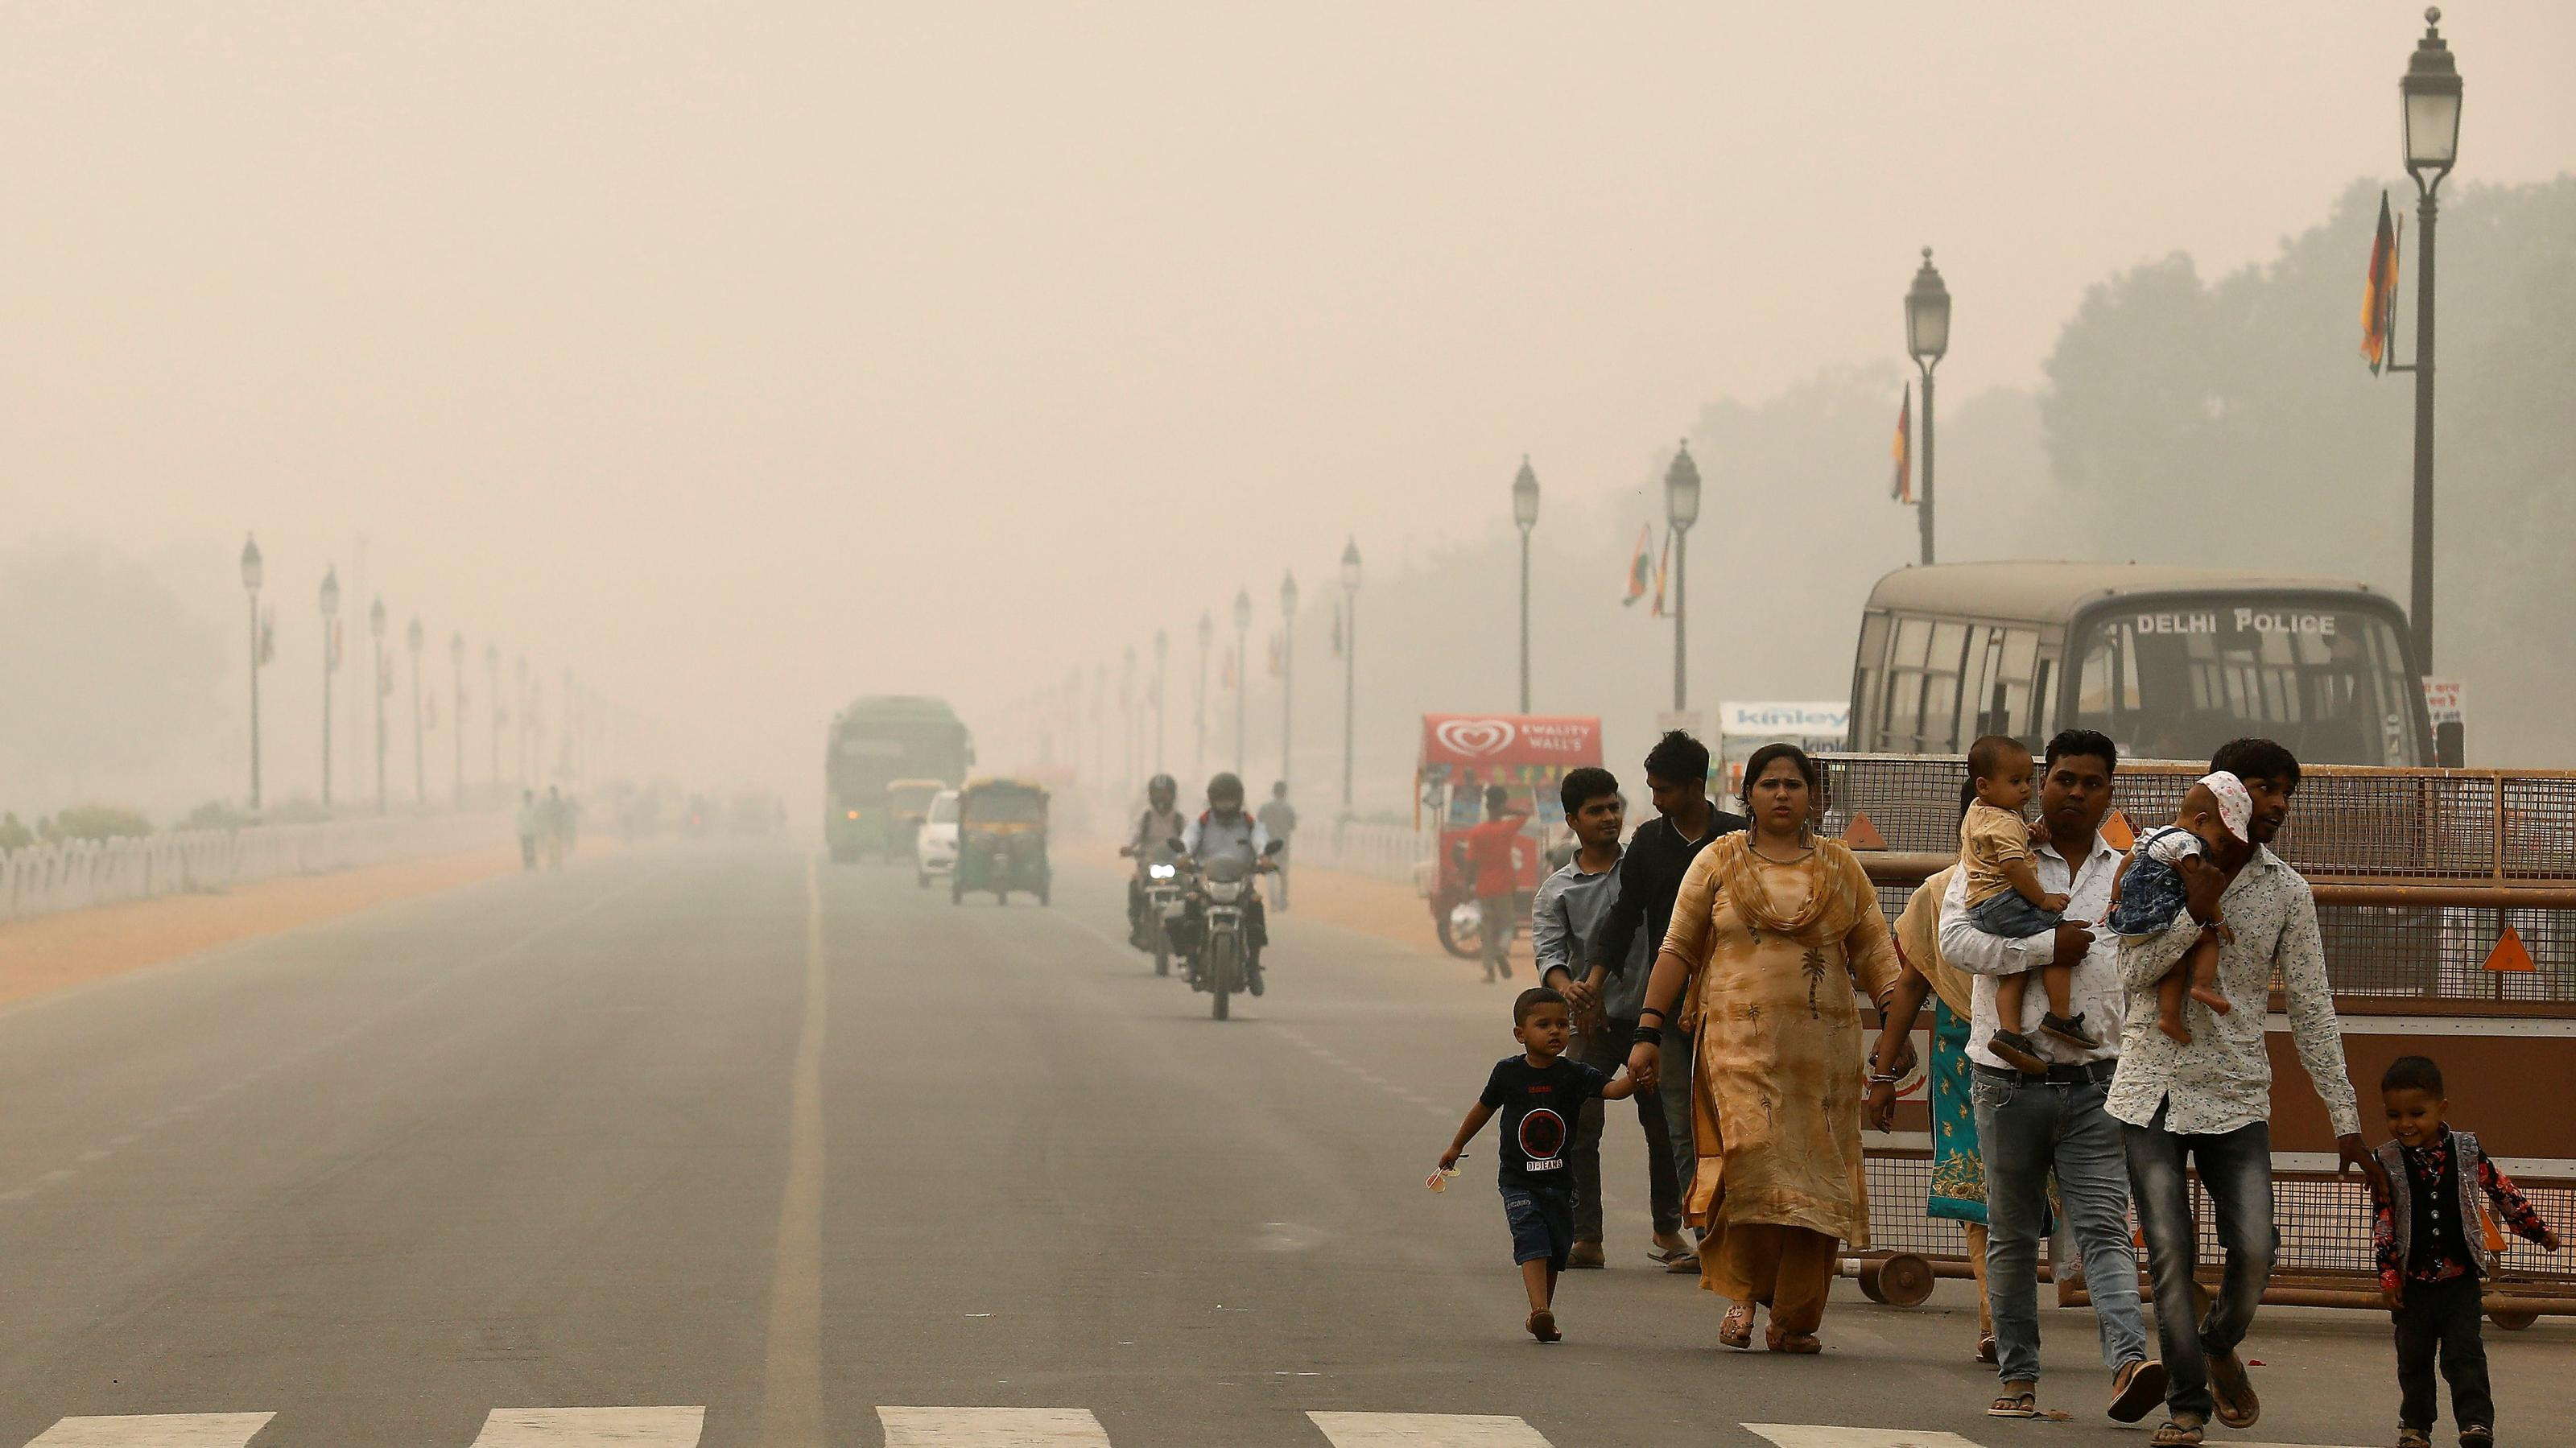 Delhi smog makes people look for cities with better air quality